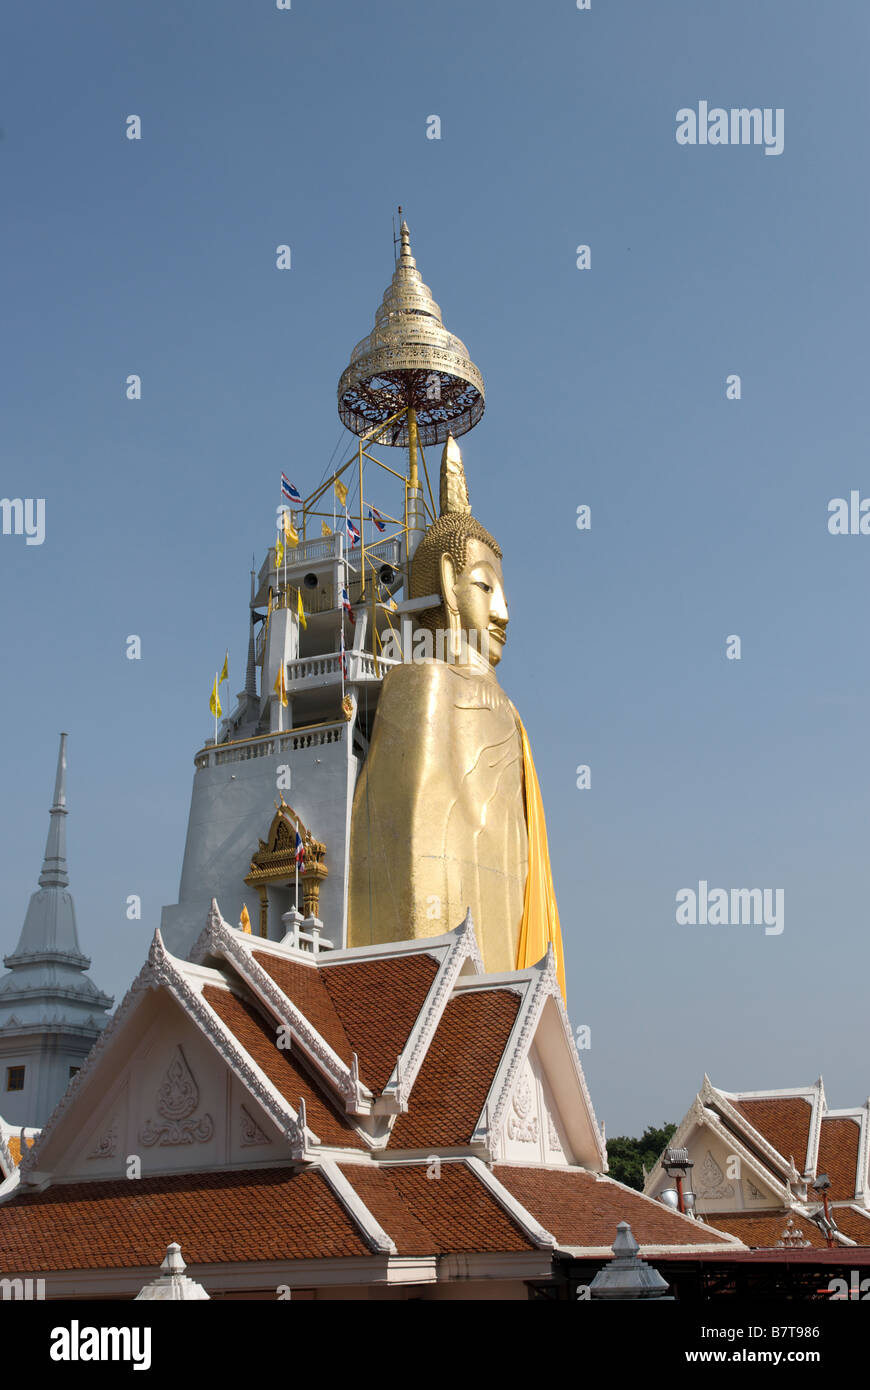 32m golden standing buddha buddhist temple Wat Intharavihan in Dusit district of Bangkok in Thailand - Stock Image